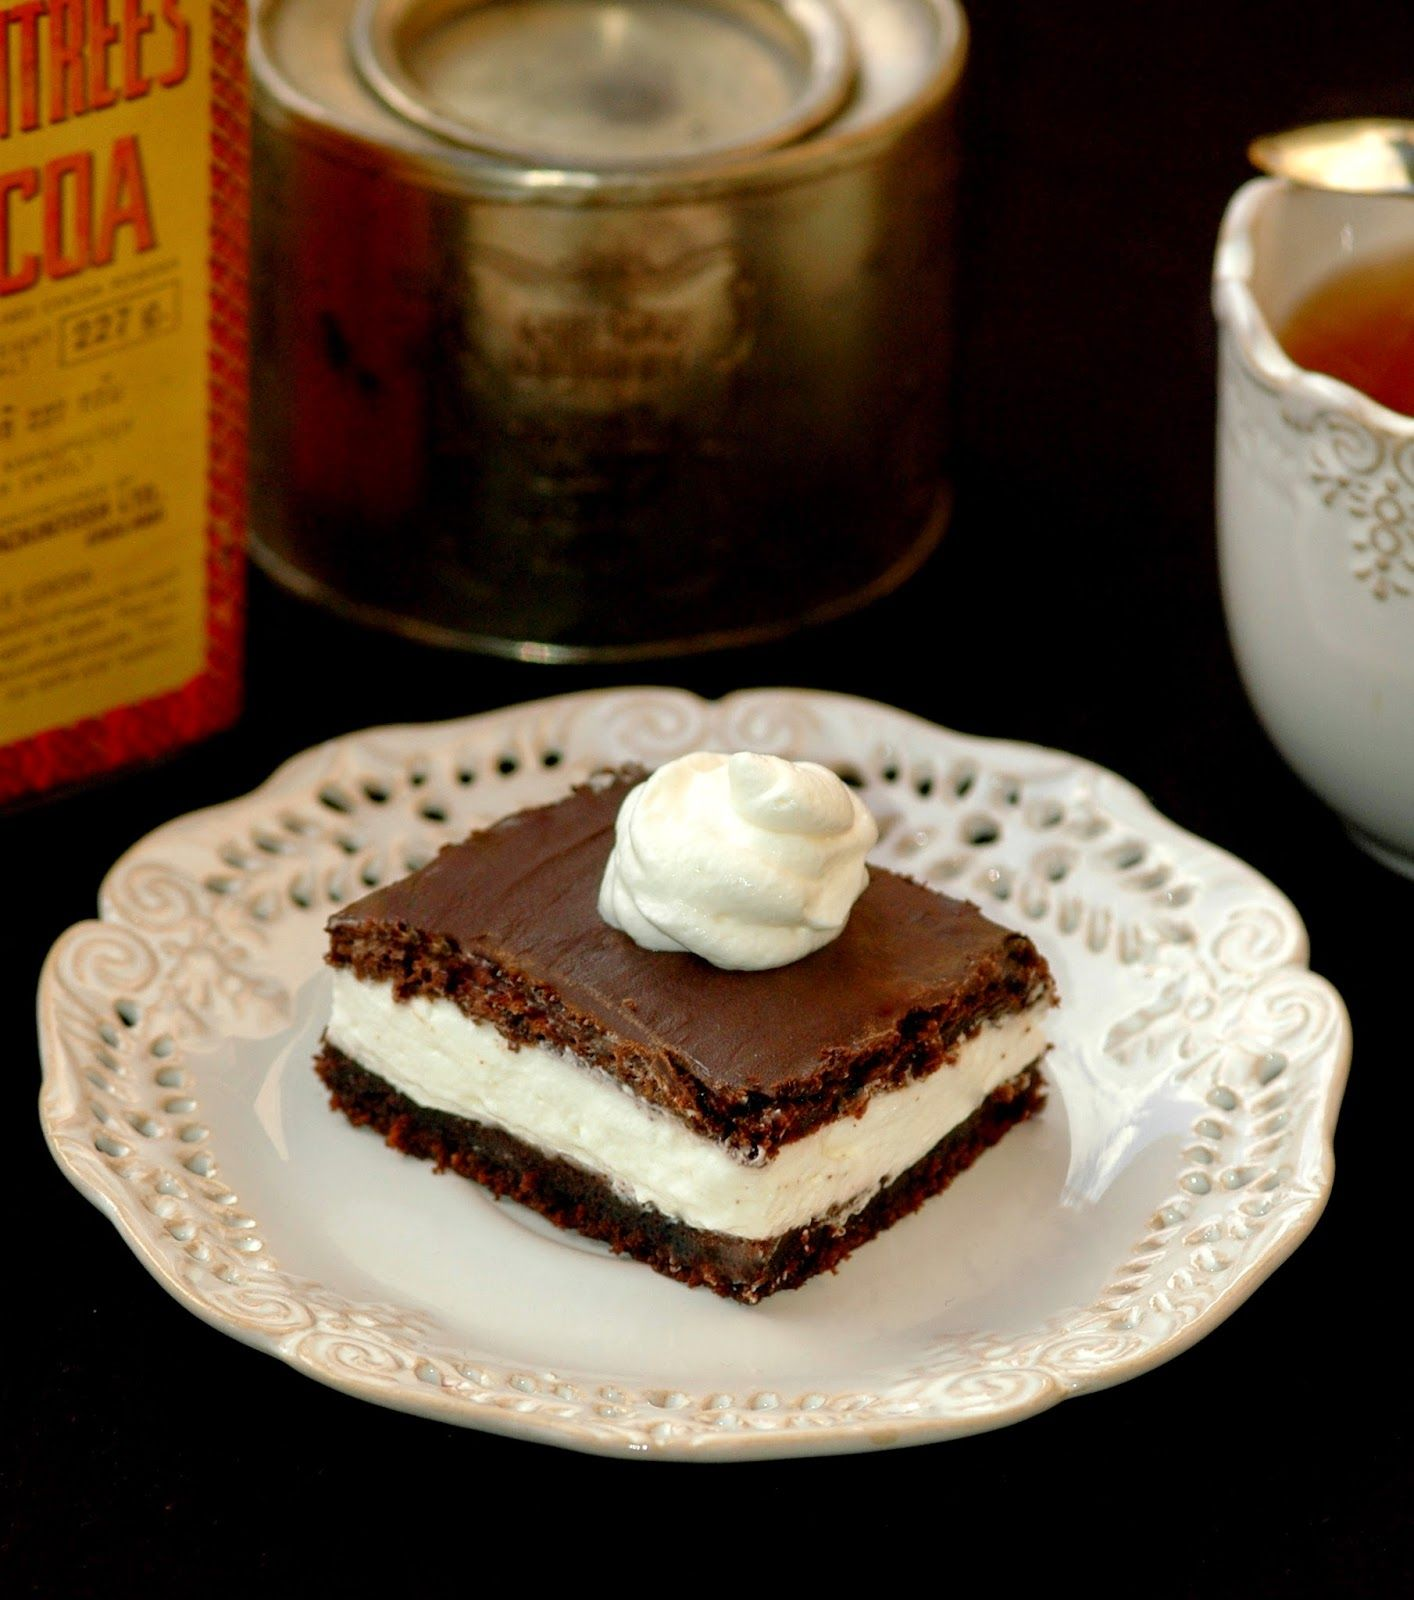 Taste Me: Vegan wuzetka without sugar. Vegan cream chocolate slice